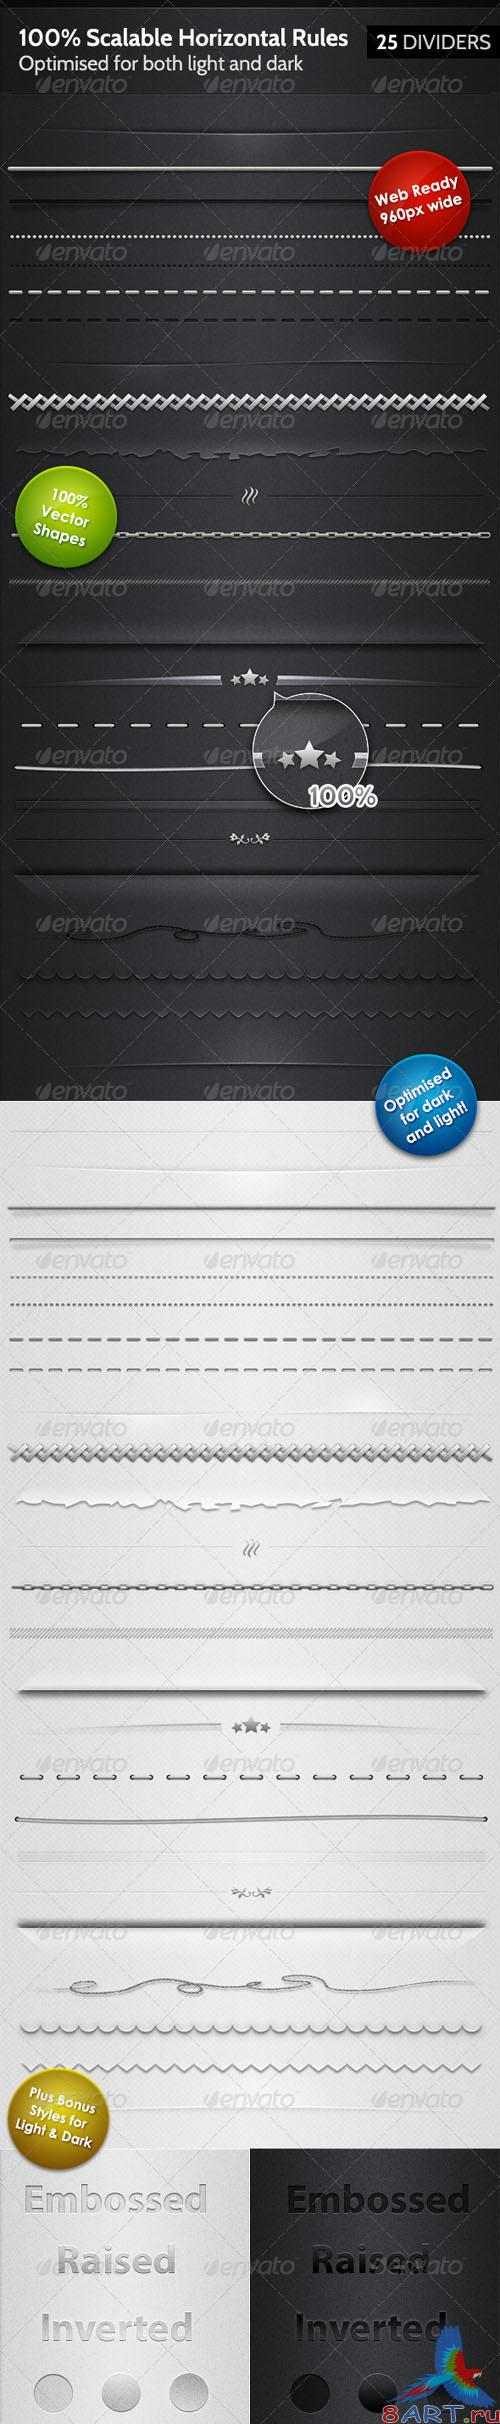 GraphicRiver 25 Horizontal Rules / Dividers - 100% Resizable - REUPLOAD